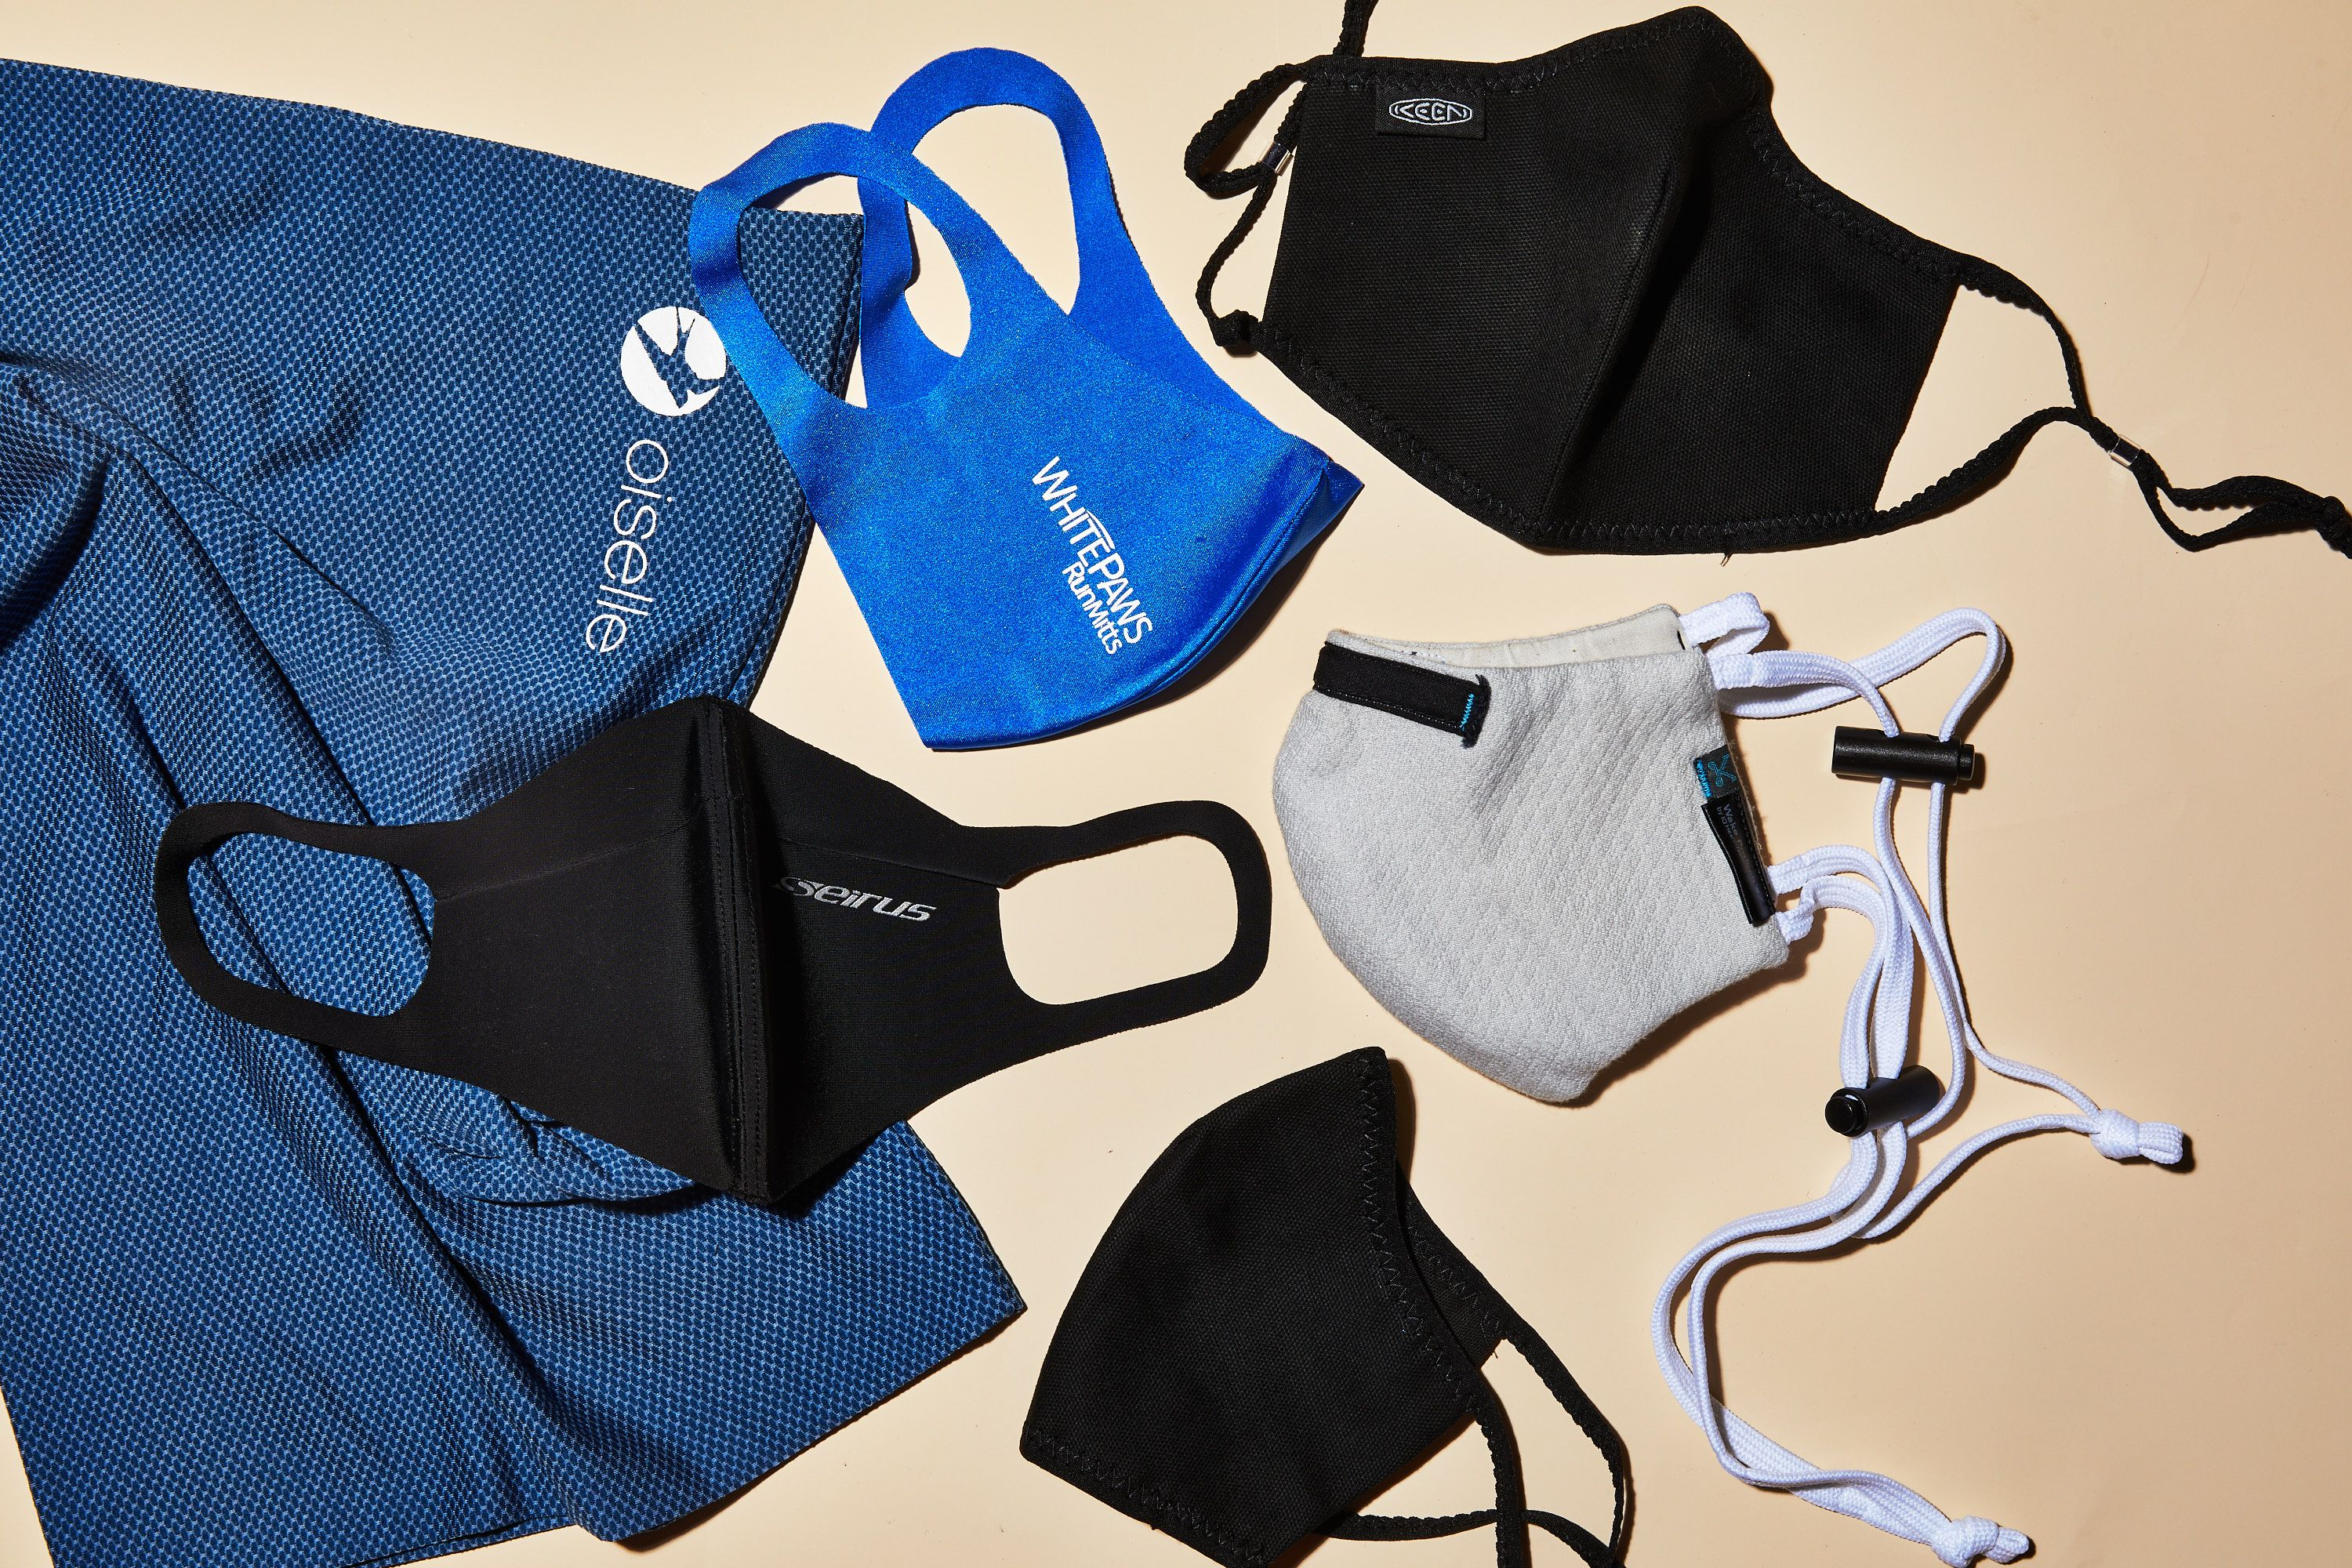 Best Face Masks For Running 2020 Top Face Masks For Working Out